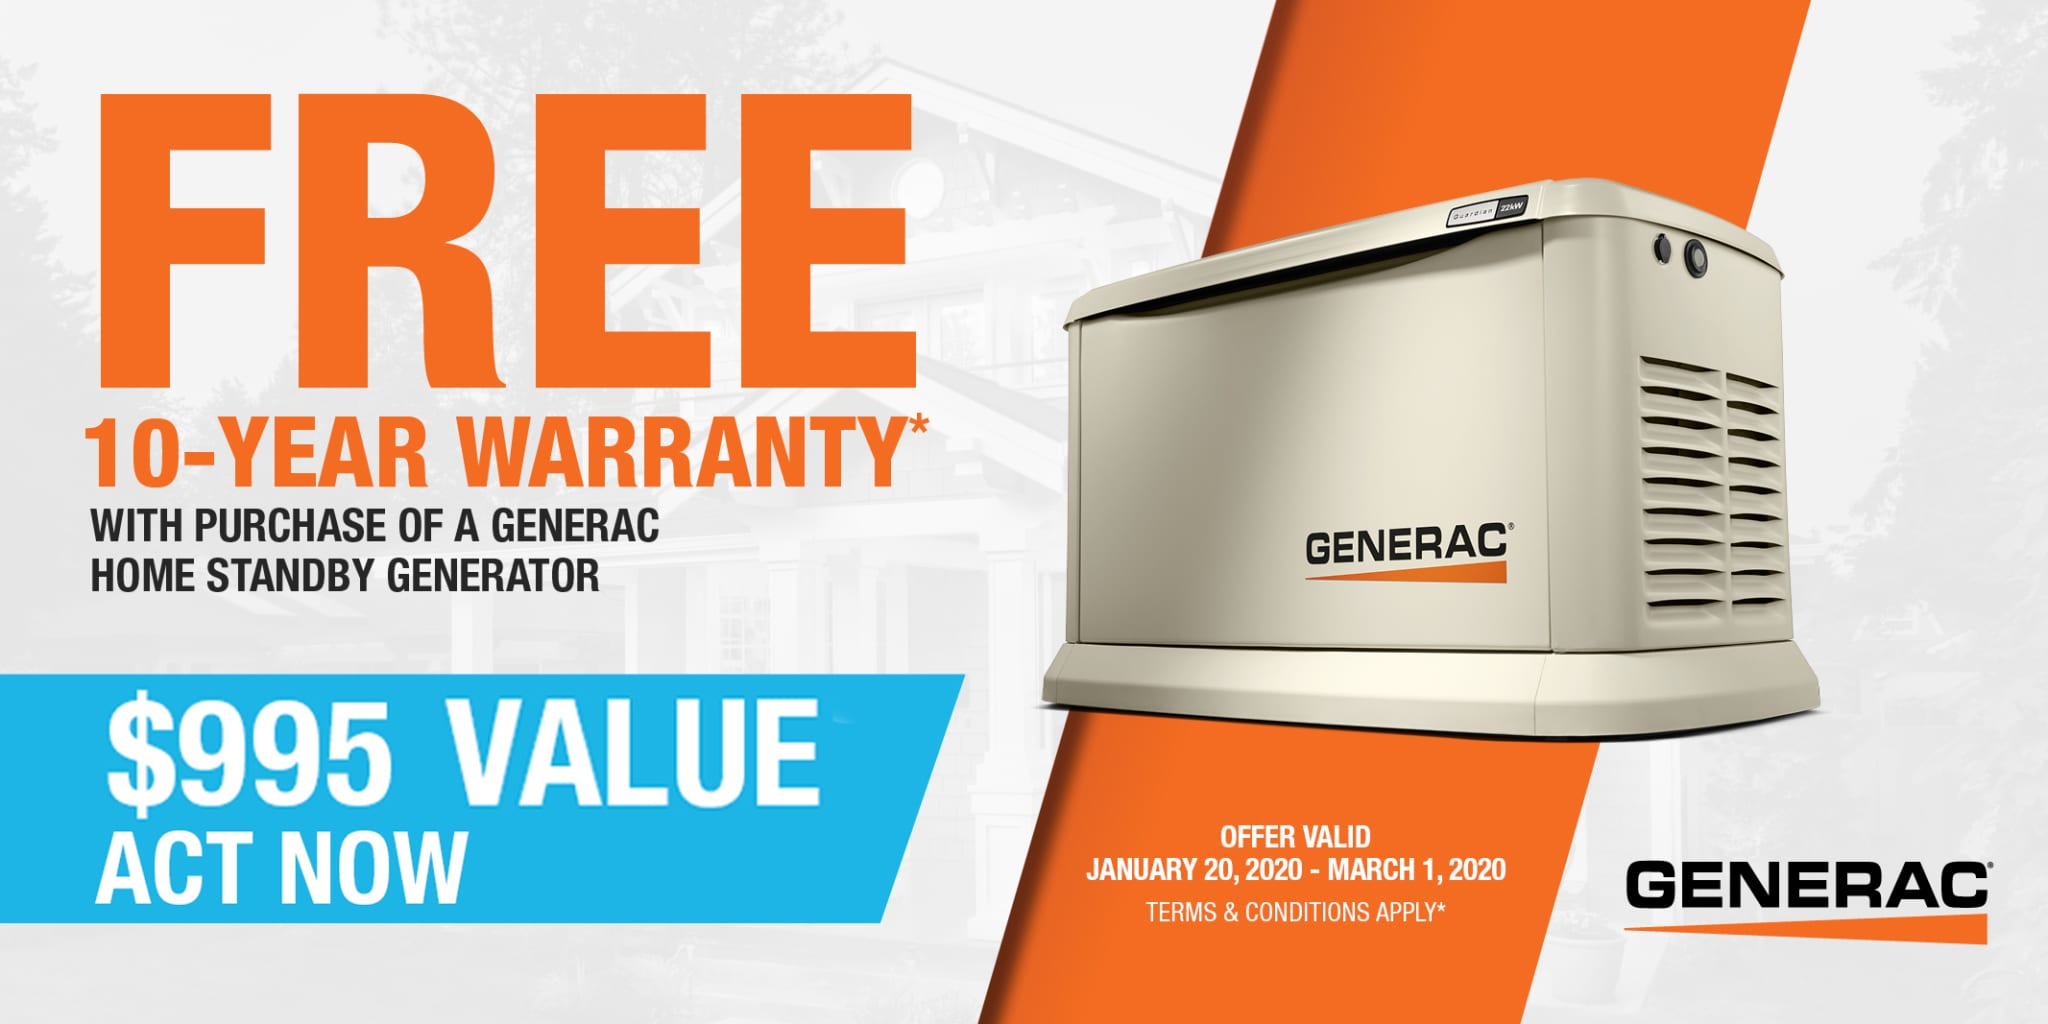 Winter 2020 Generac FREE 10 YEAR EXTENDED WARRANTY Special Offer from Hale's Electrical Service